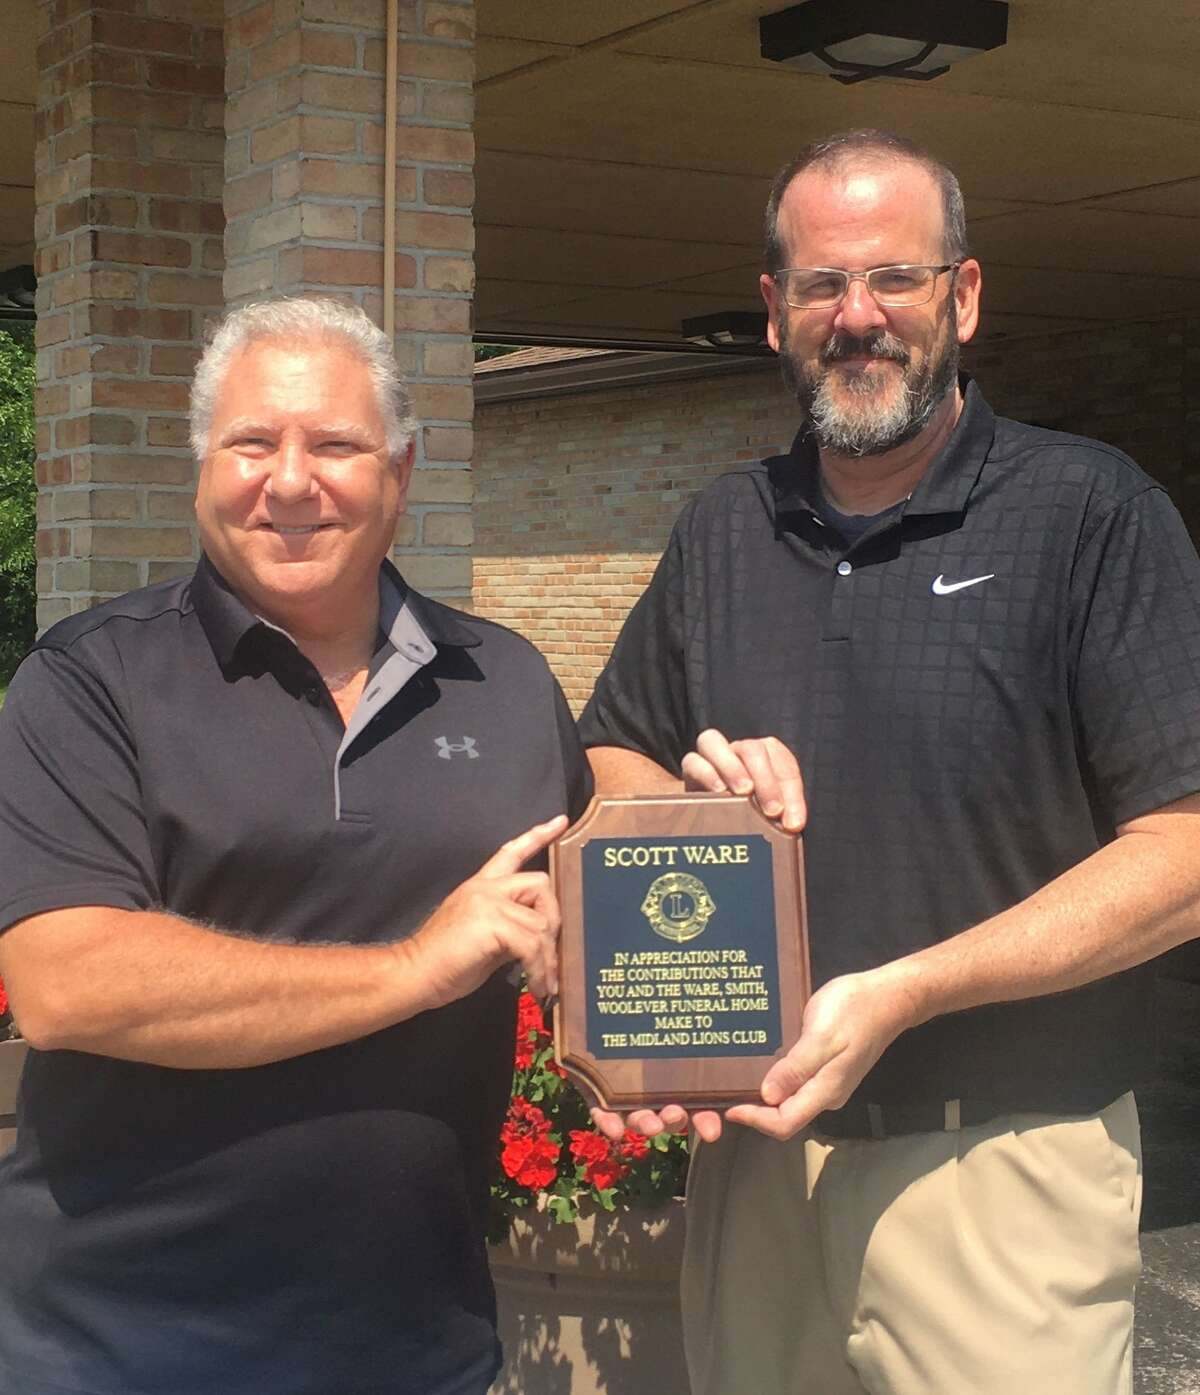 Midland Lions Scott Ware, left, and Rick Ratell were among those honored by the Midland Lions Club at its Awards Night on June 15 at the Midland Country Club.